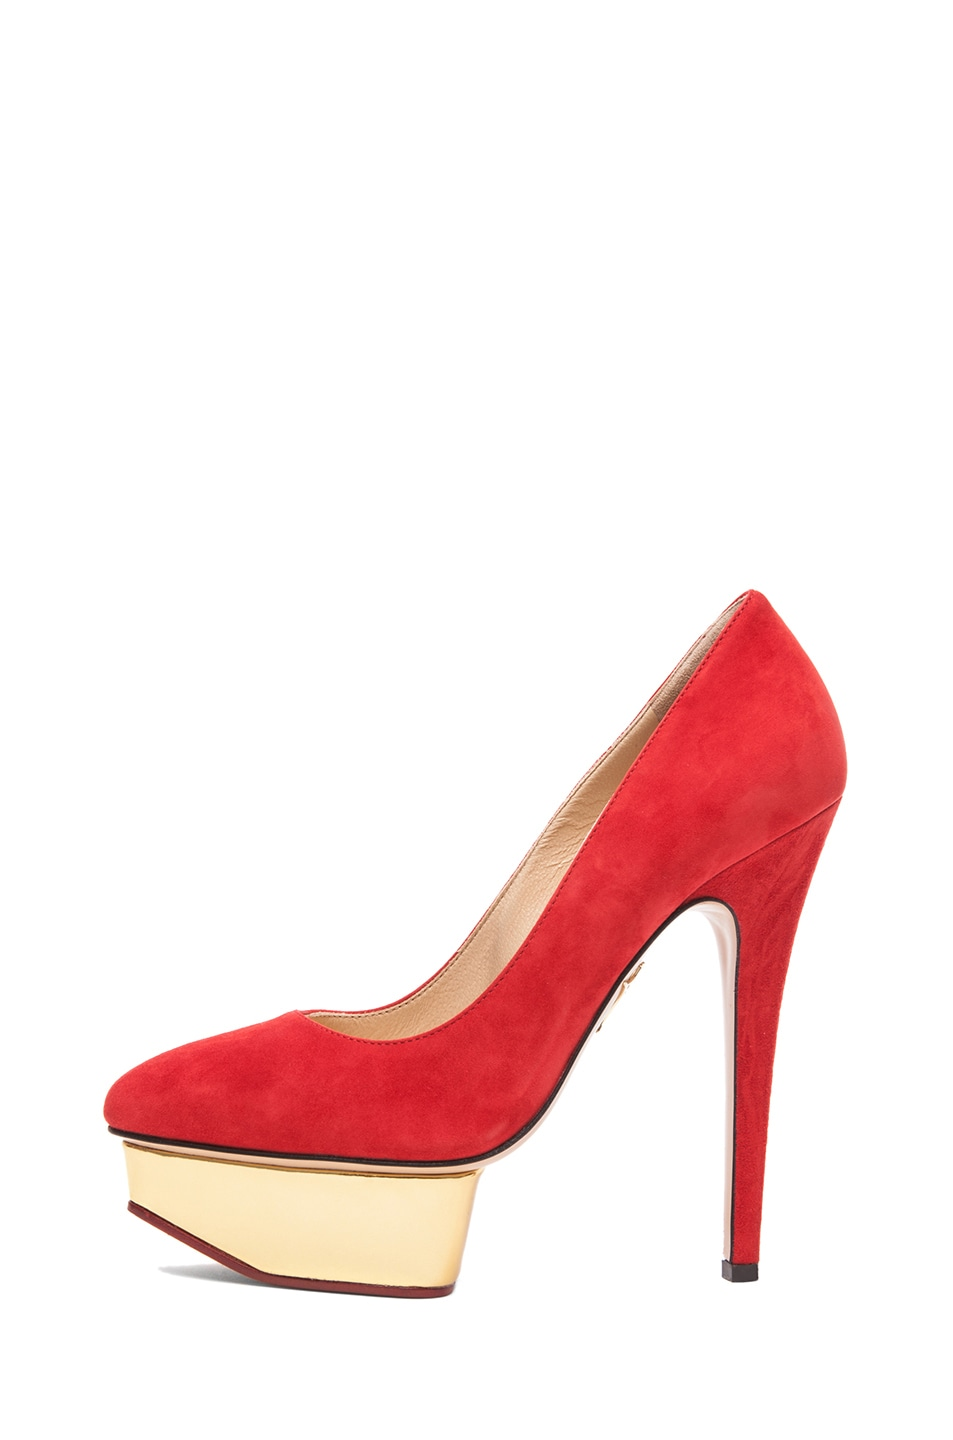 Image 1 of Charlotte Olympia Cindy Suede Pumps in Red